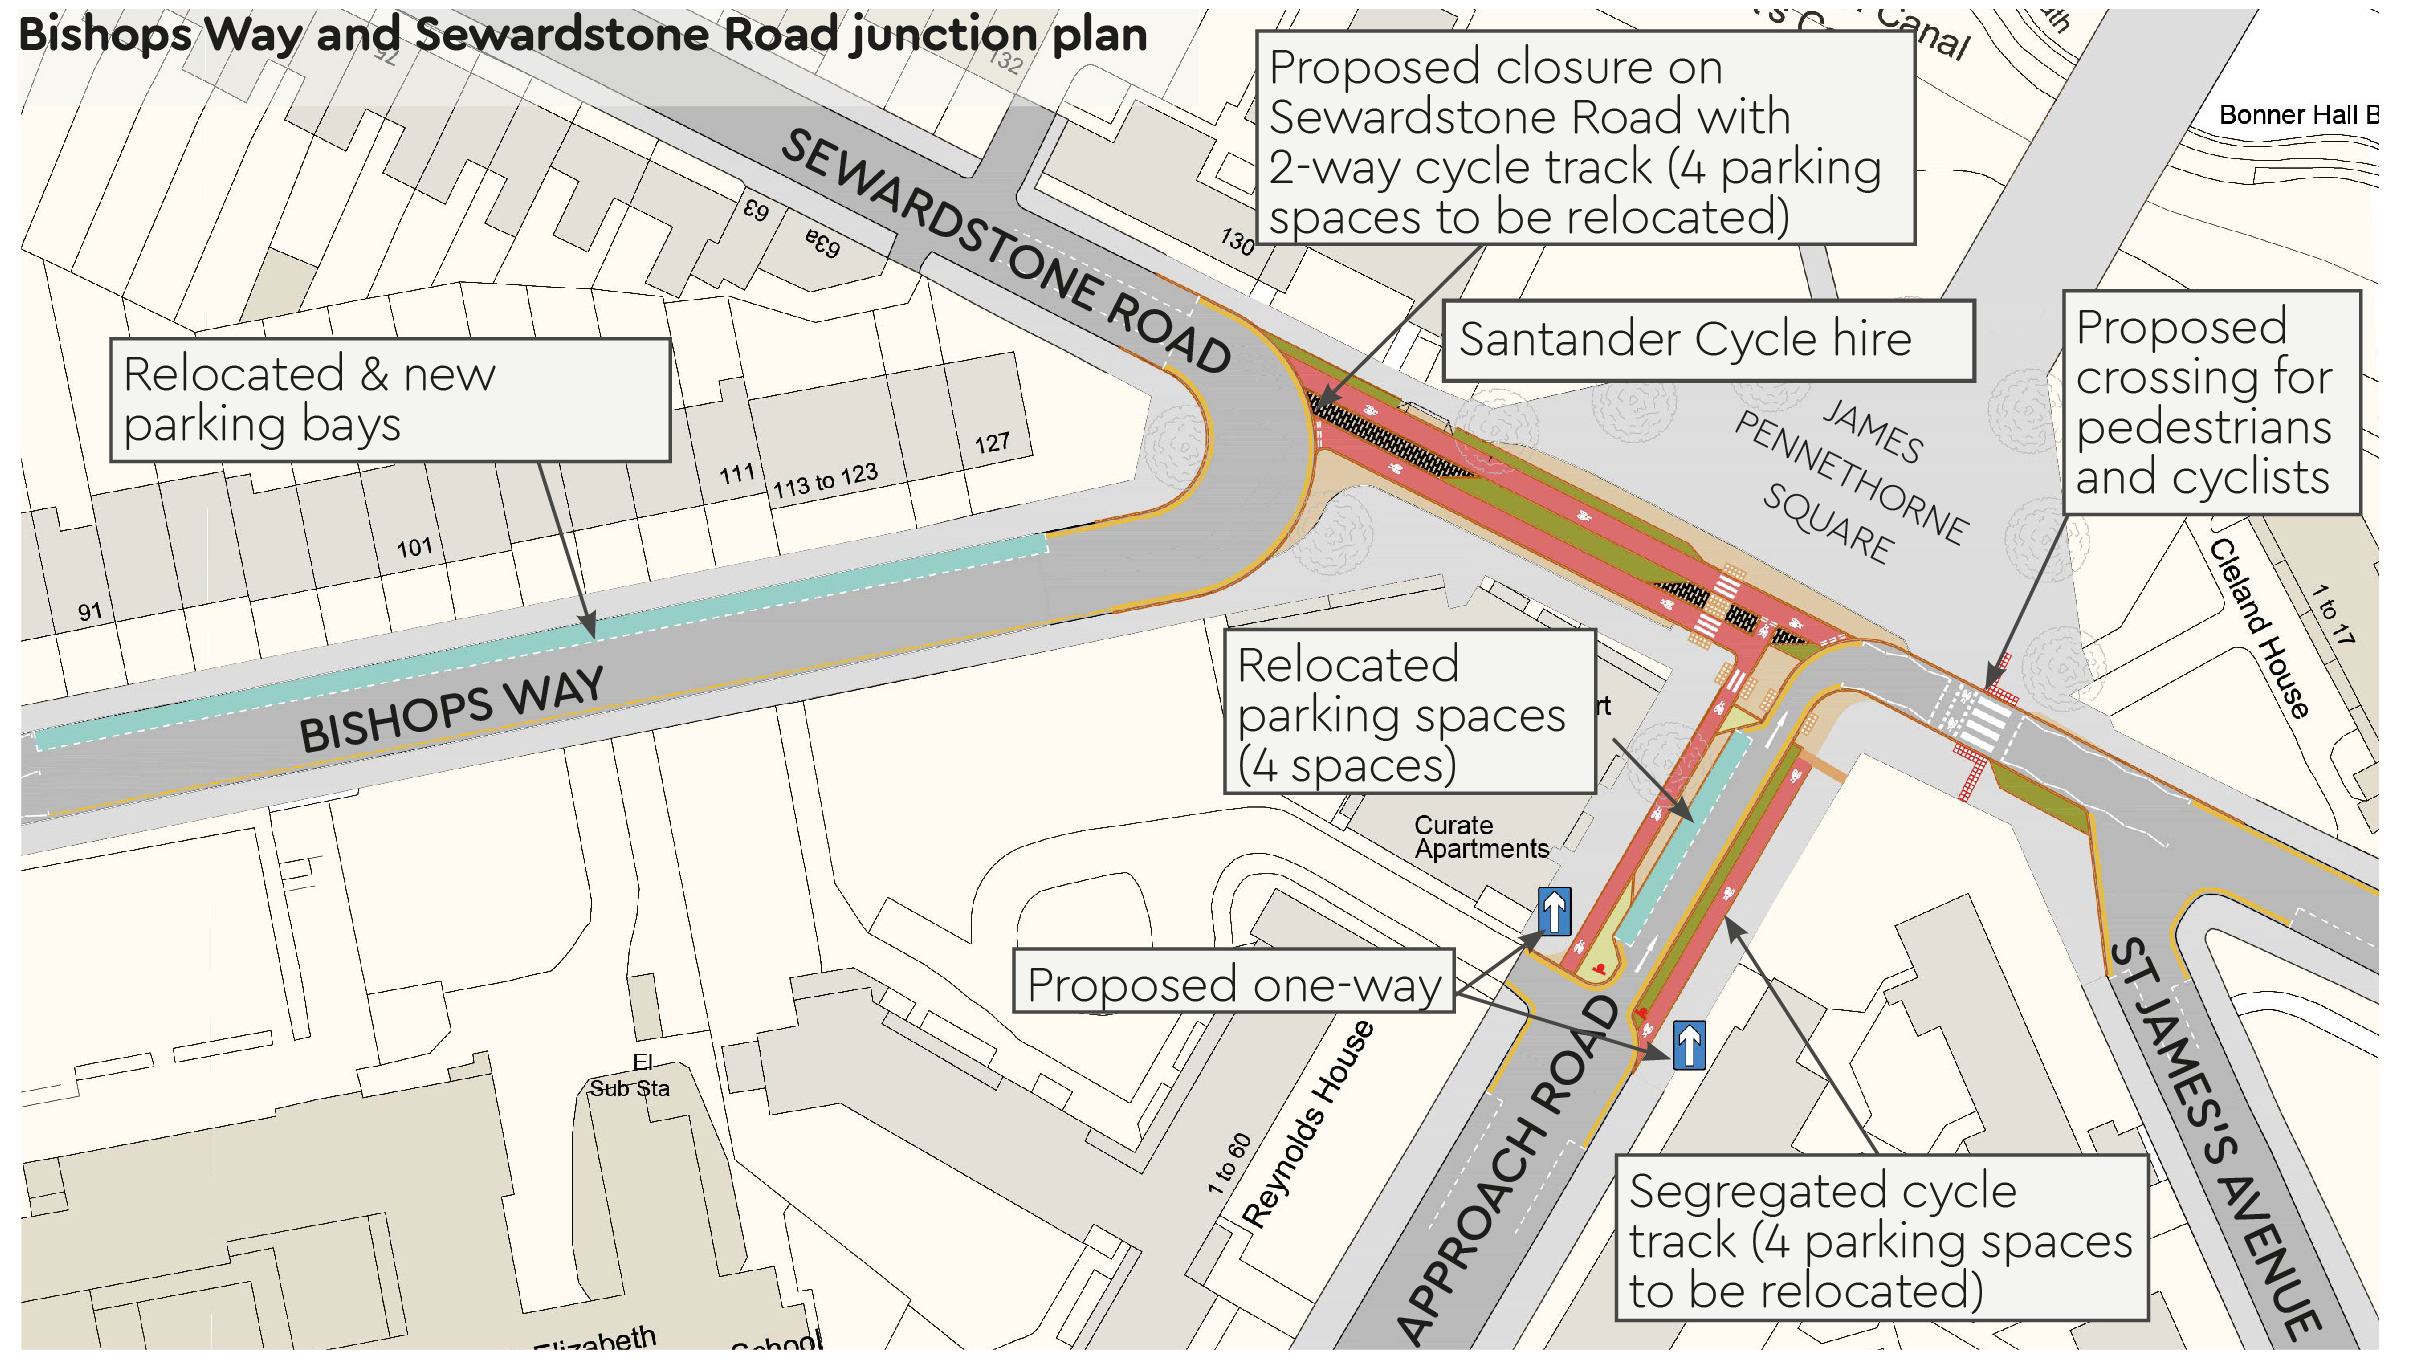 Bishops Way and Sewardstone Road Junction Plan: proposed closure on Sewardstone Road with 2-way cycle track, Approach Road proposed one-way northbound with segregated cycle track and relocated parking spaces, Santander Cycle hire in James Pennethorne Square, and pedestrian and cycle crossing at the square on Sewardstone Road.